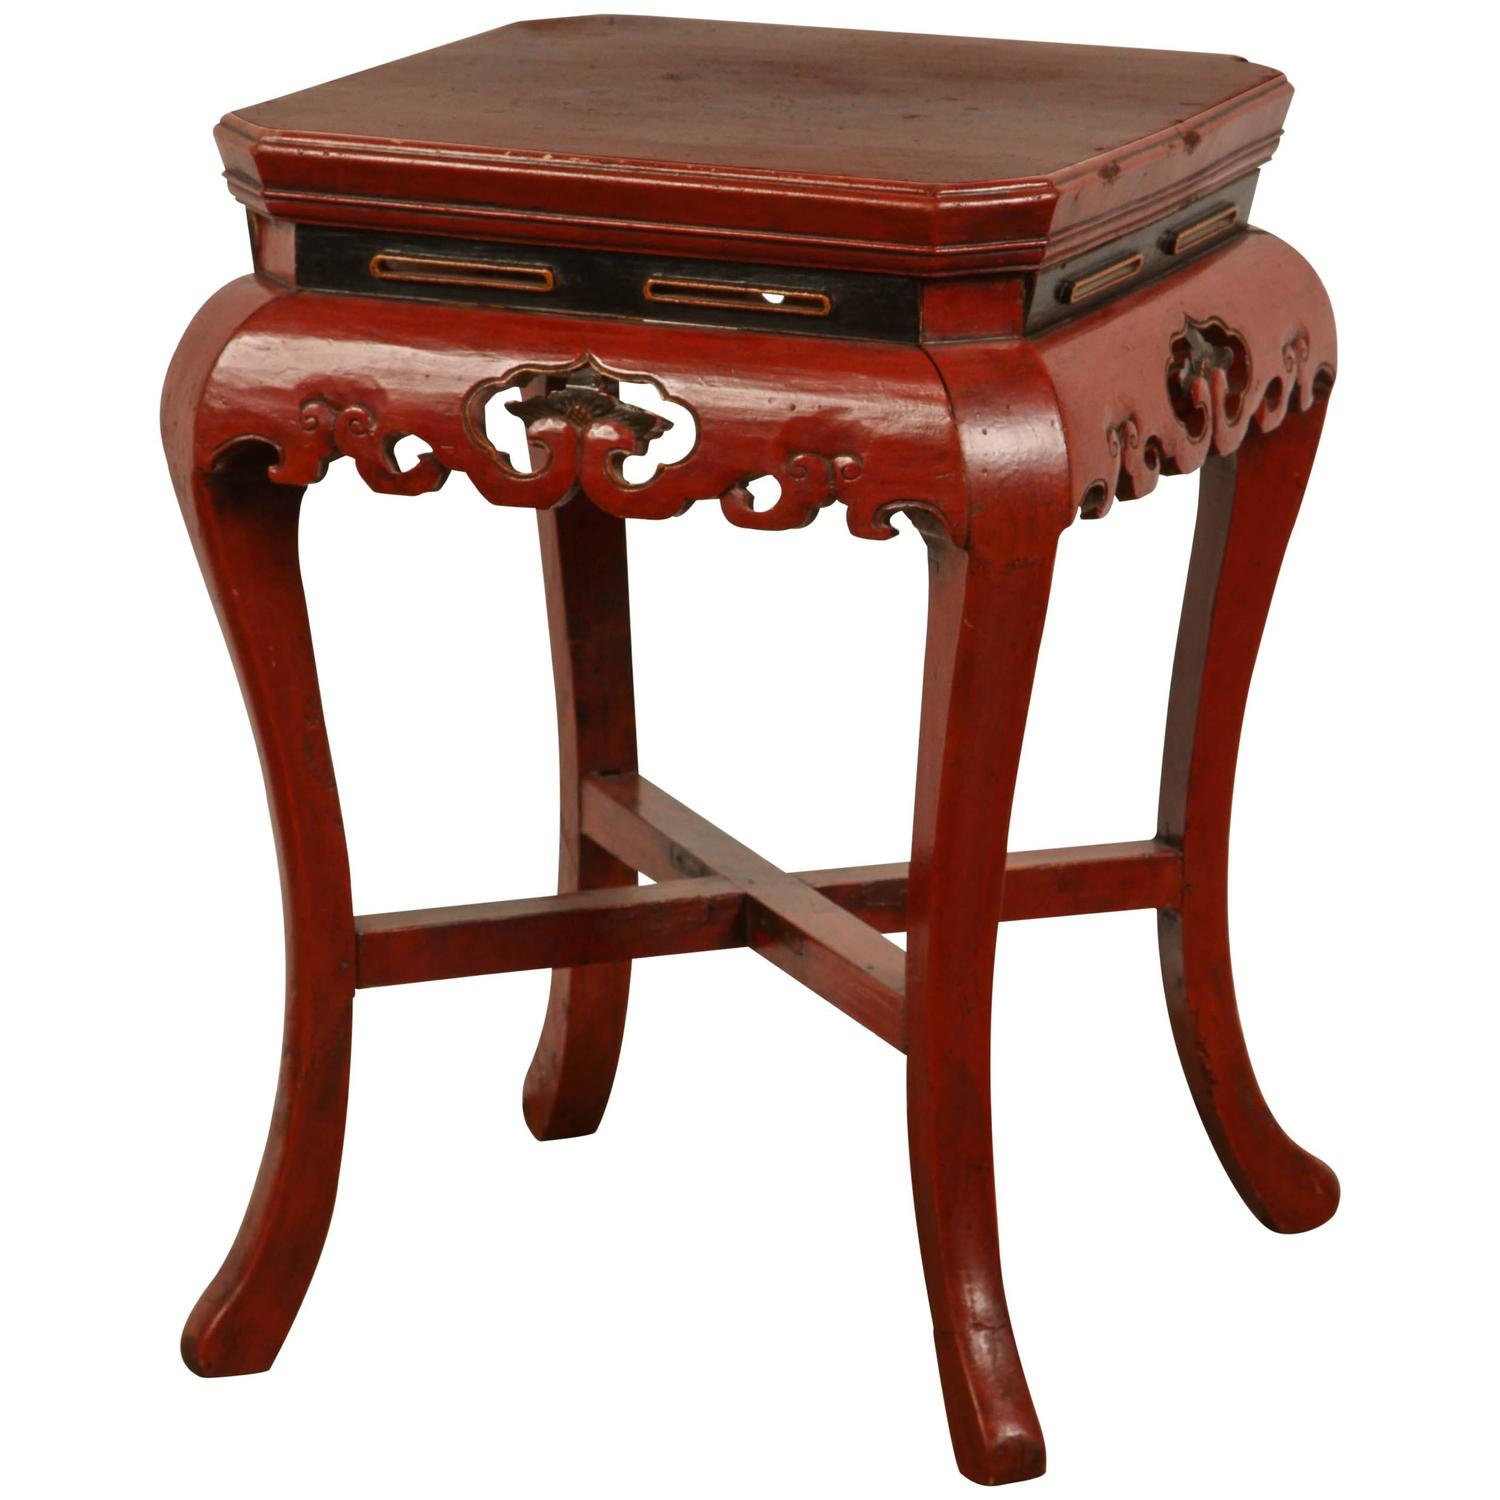 Chinese red side table at 1stdibs for Red side table